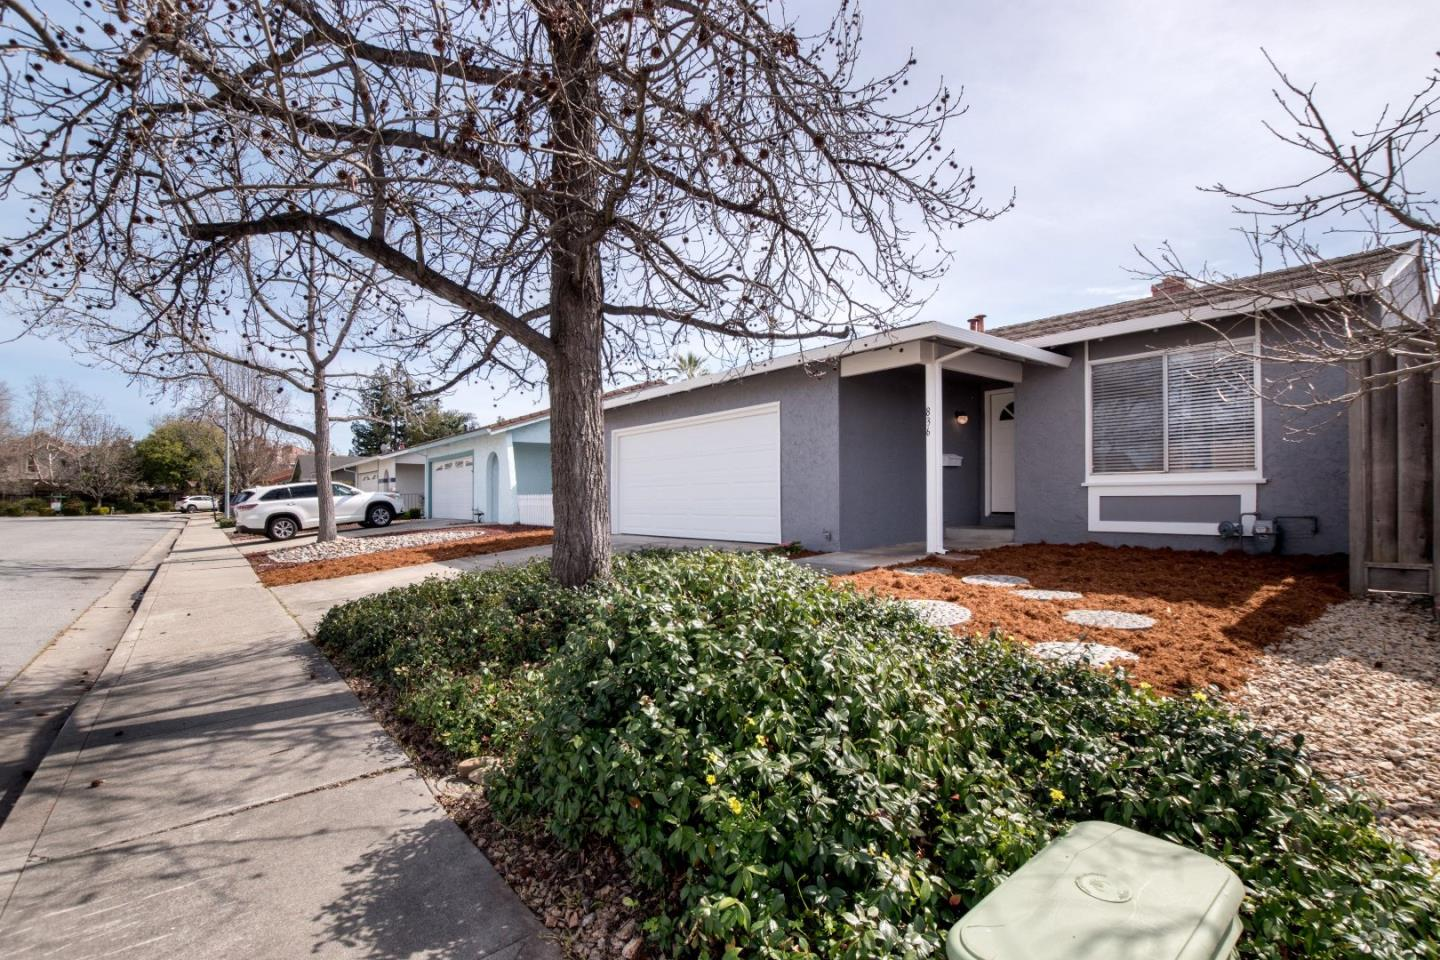 Single Family Home for Sale at 836 Sunnypark Court 836 Sunnypark Court Campbell, California 95008 United States